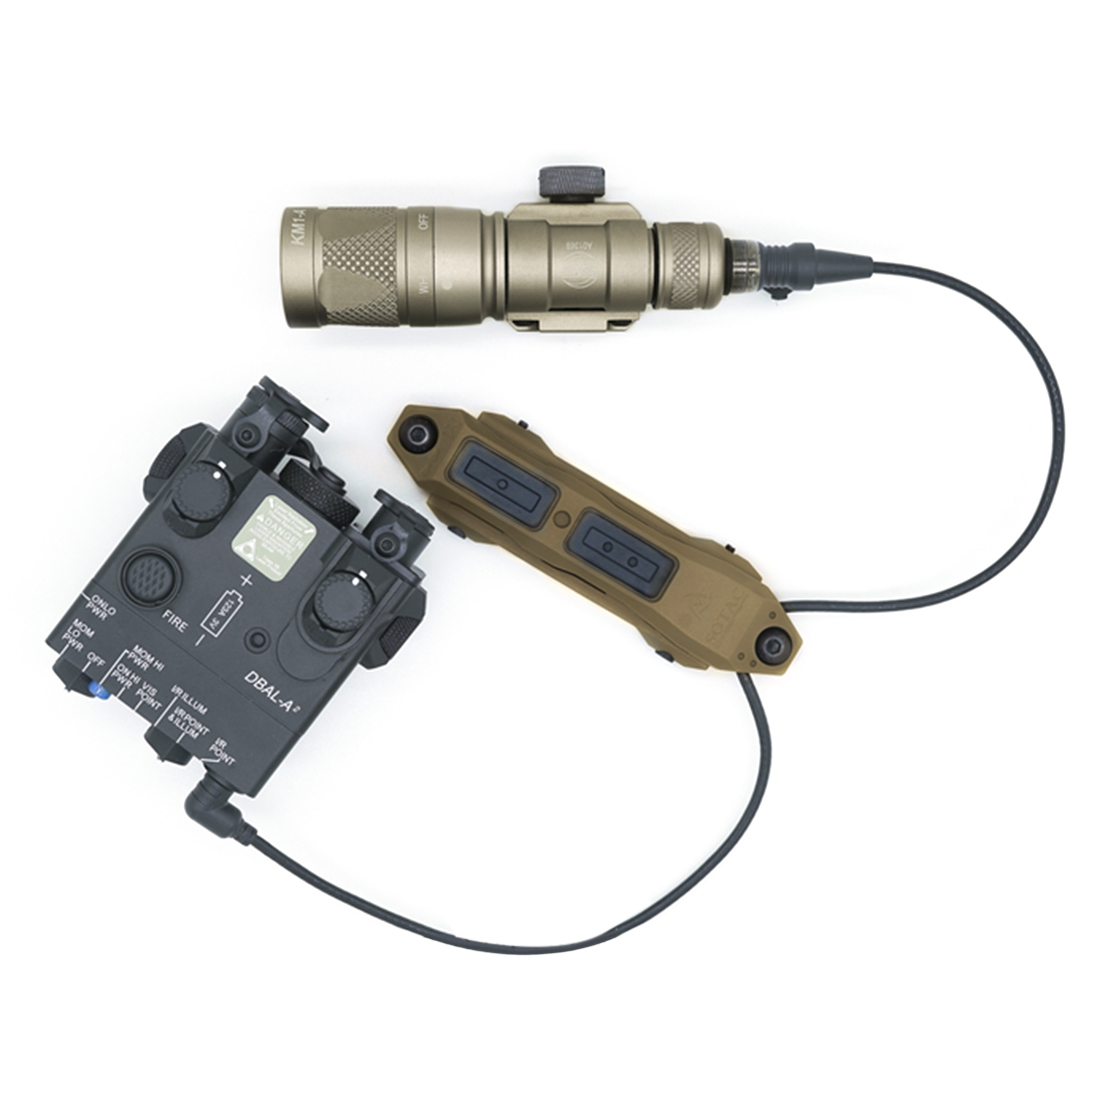 NewSoTac Night Vision IR PEQ15 Dbal <font><b>A2</b></font> Laser Sight Aimed Battery <font><b>Box</b></font> Tactical Equipment - Tan IR Infrared Fill <font><b>Light</b></font> Version image